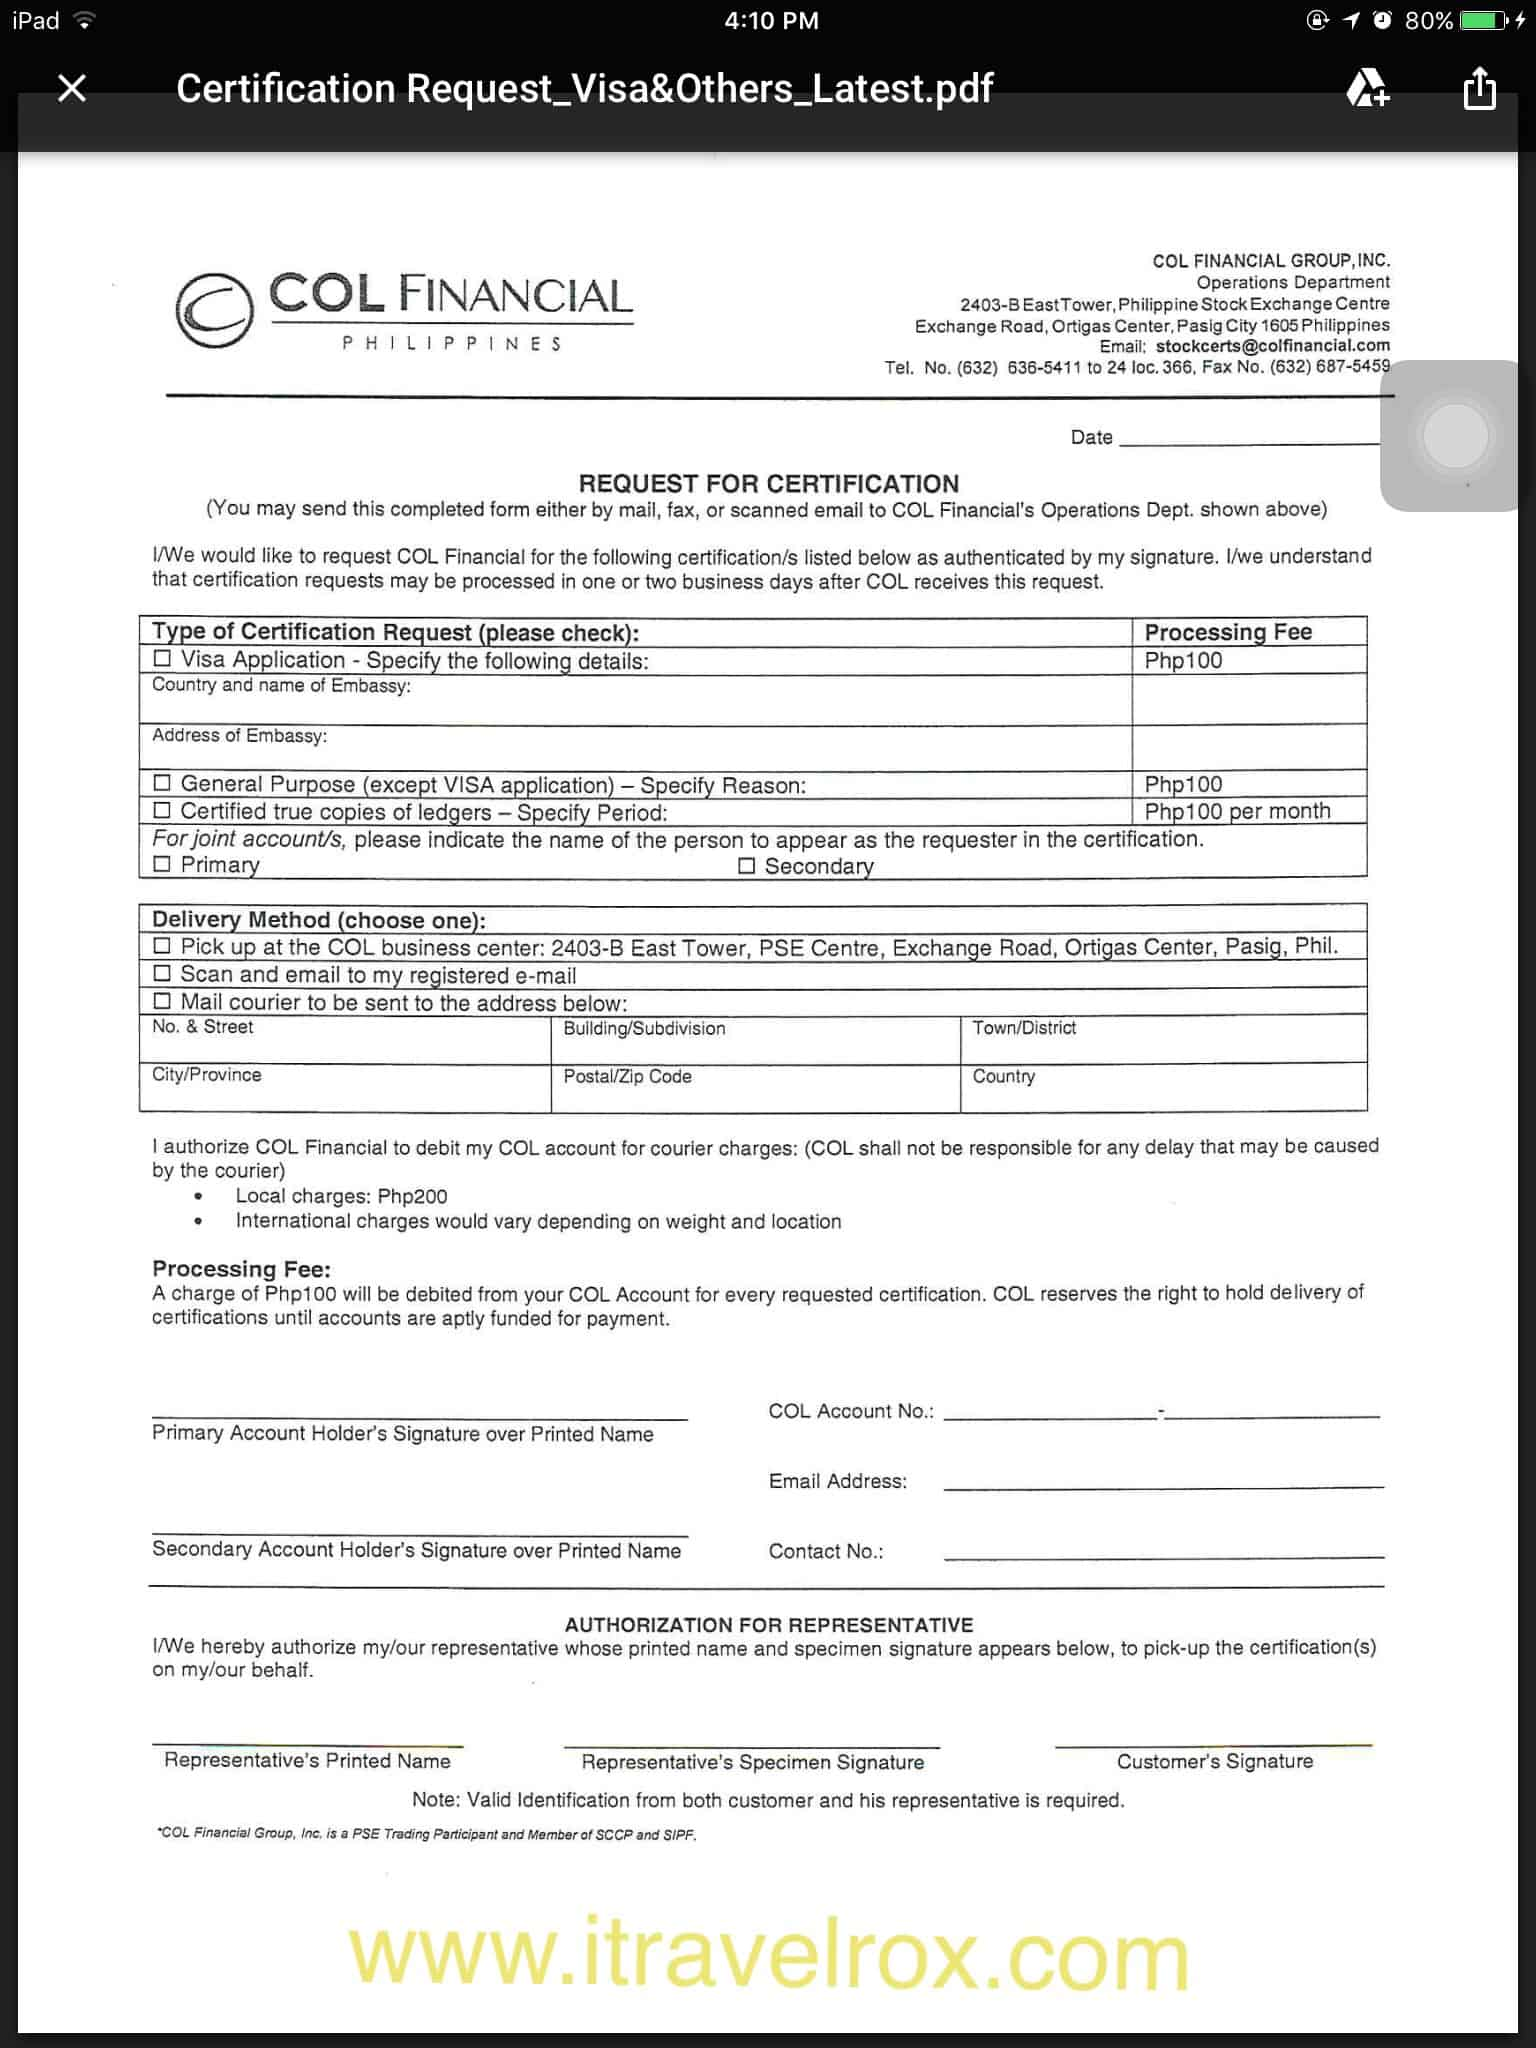 How to request stock certificate from col financial philippines how to request stock certificate from col financial philippines for visa application itravelrox yelopaper